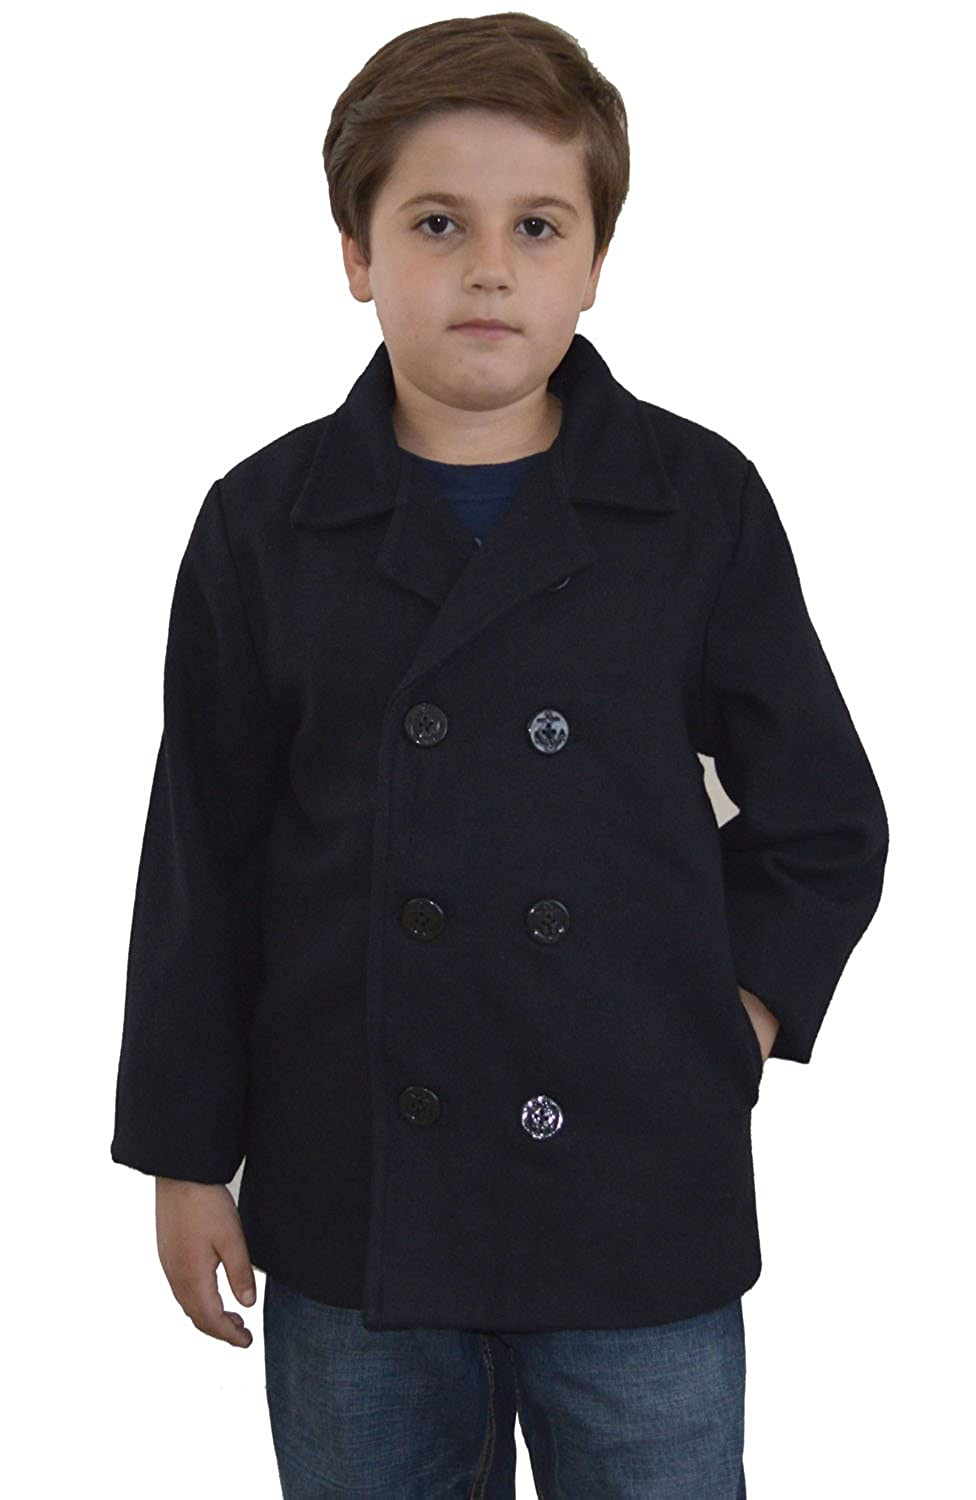 fe4a3765e Amazon.com  Johnnie Lene Kids Navy Blue Wool Peacoat Jacket  Infant ...